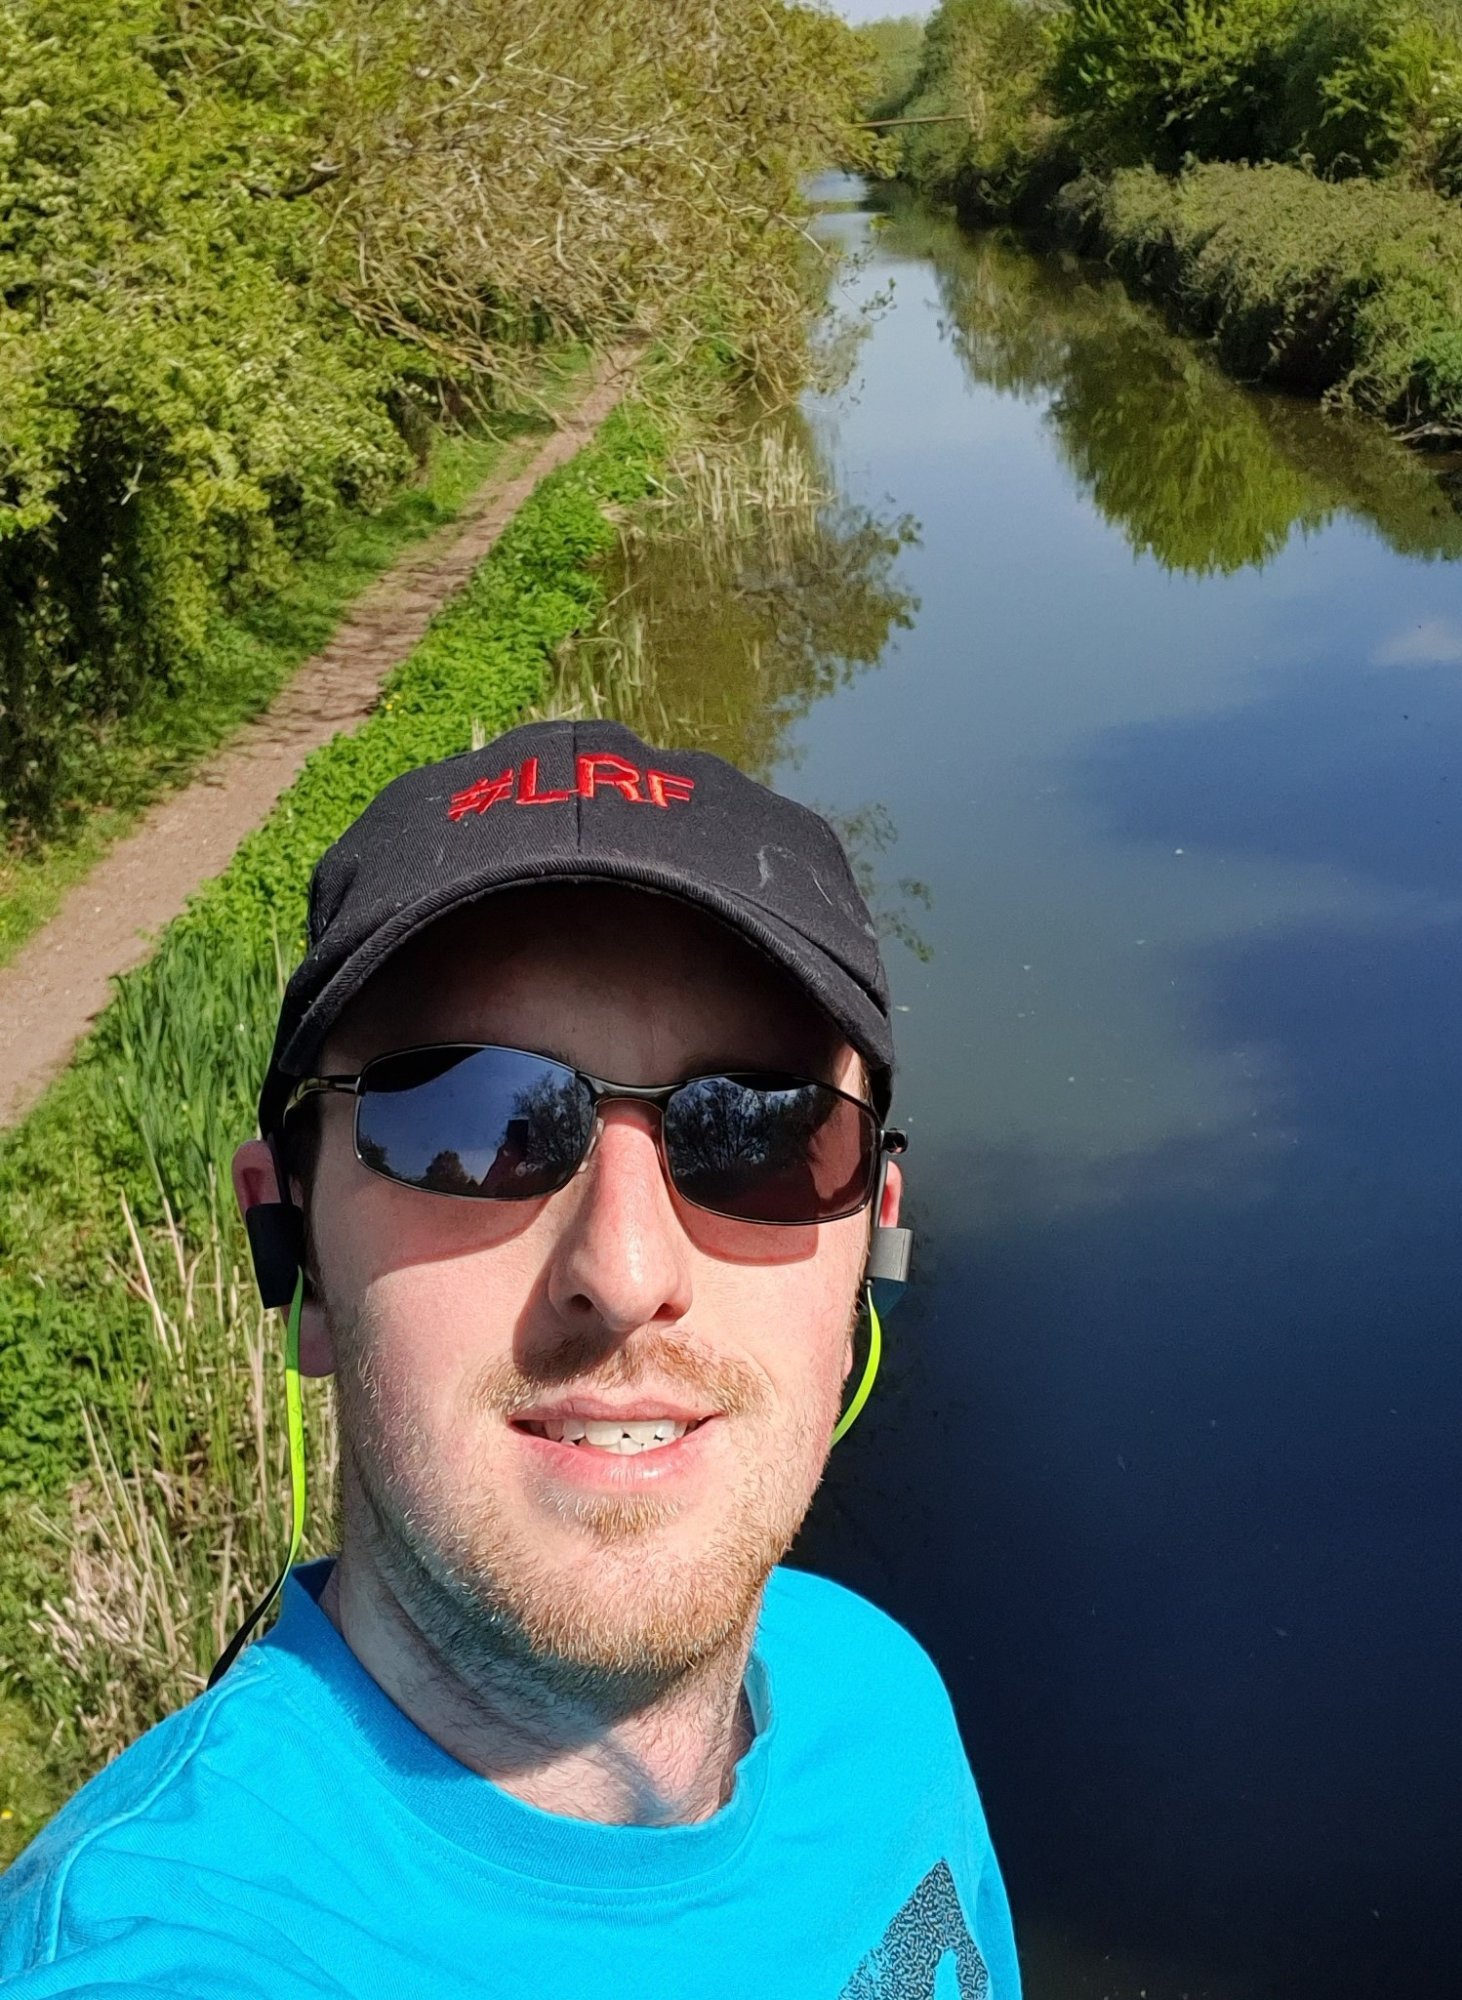 Me on the canal